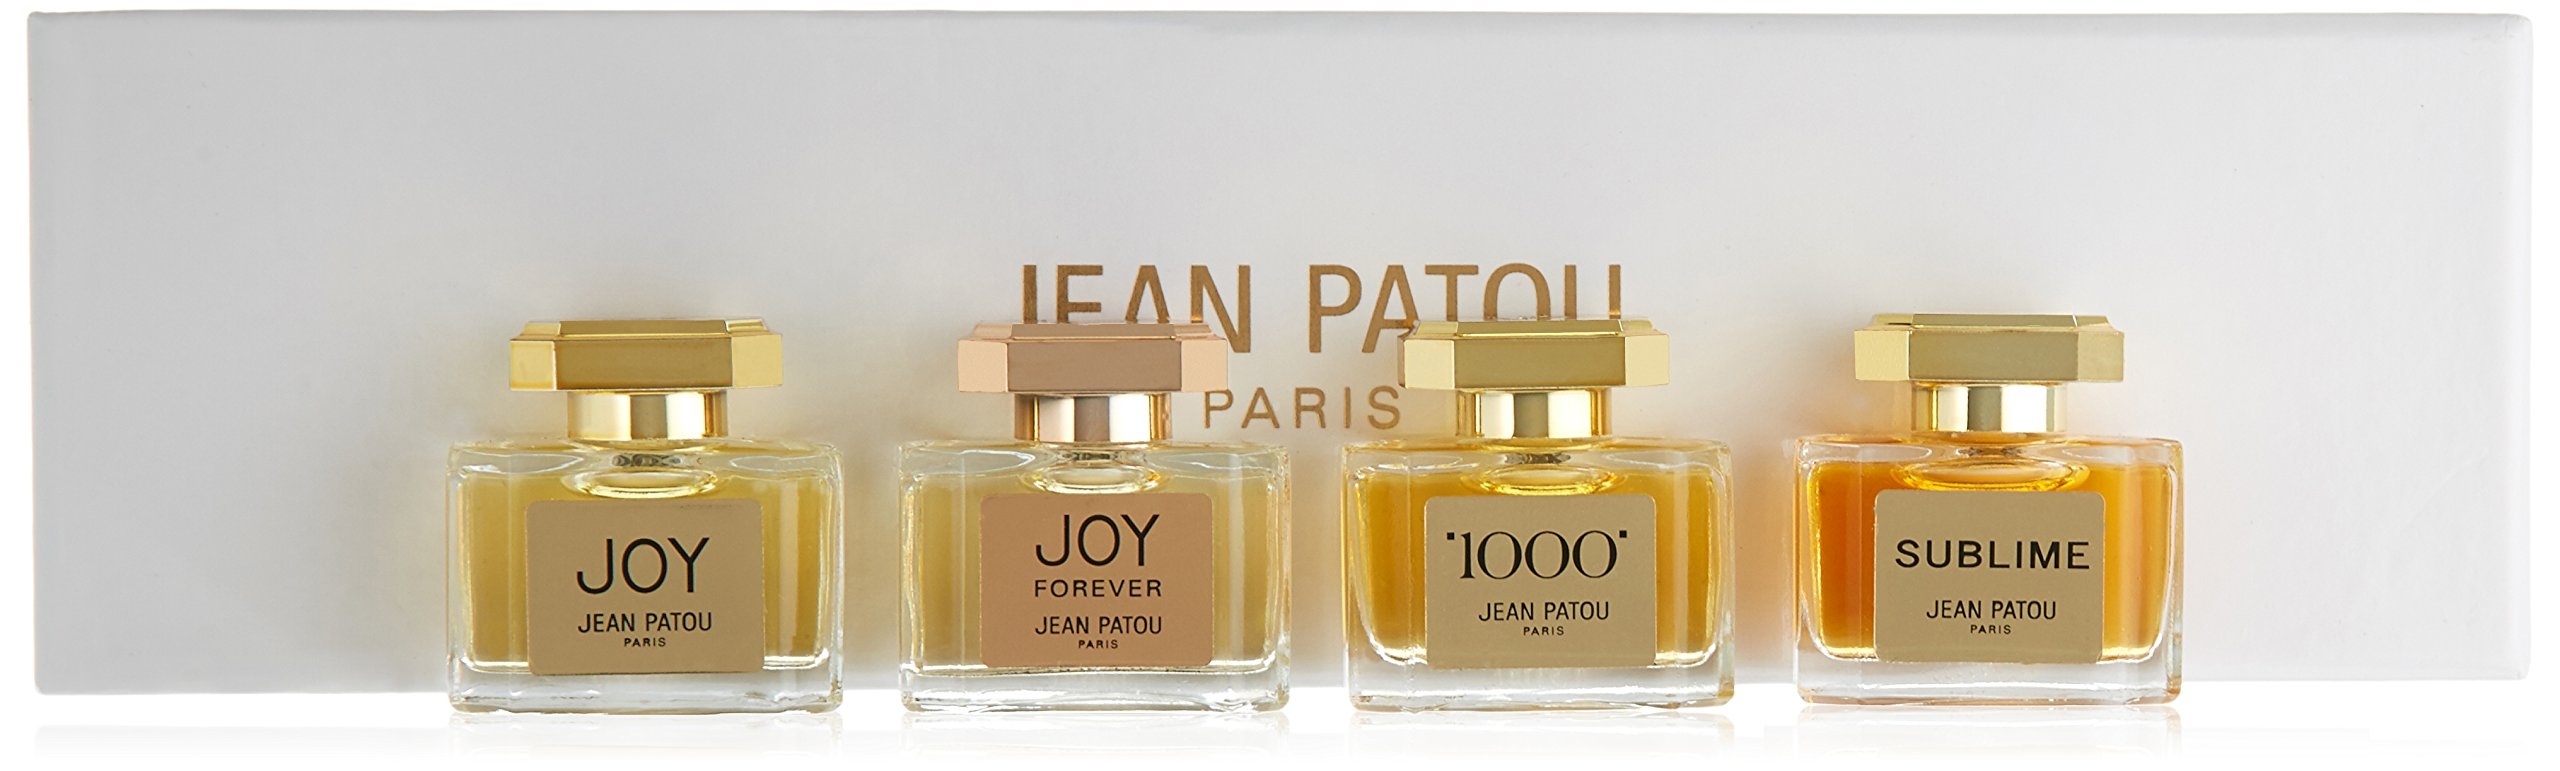 Jean Patou Mini Coffret Fragrance Gift Set